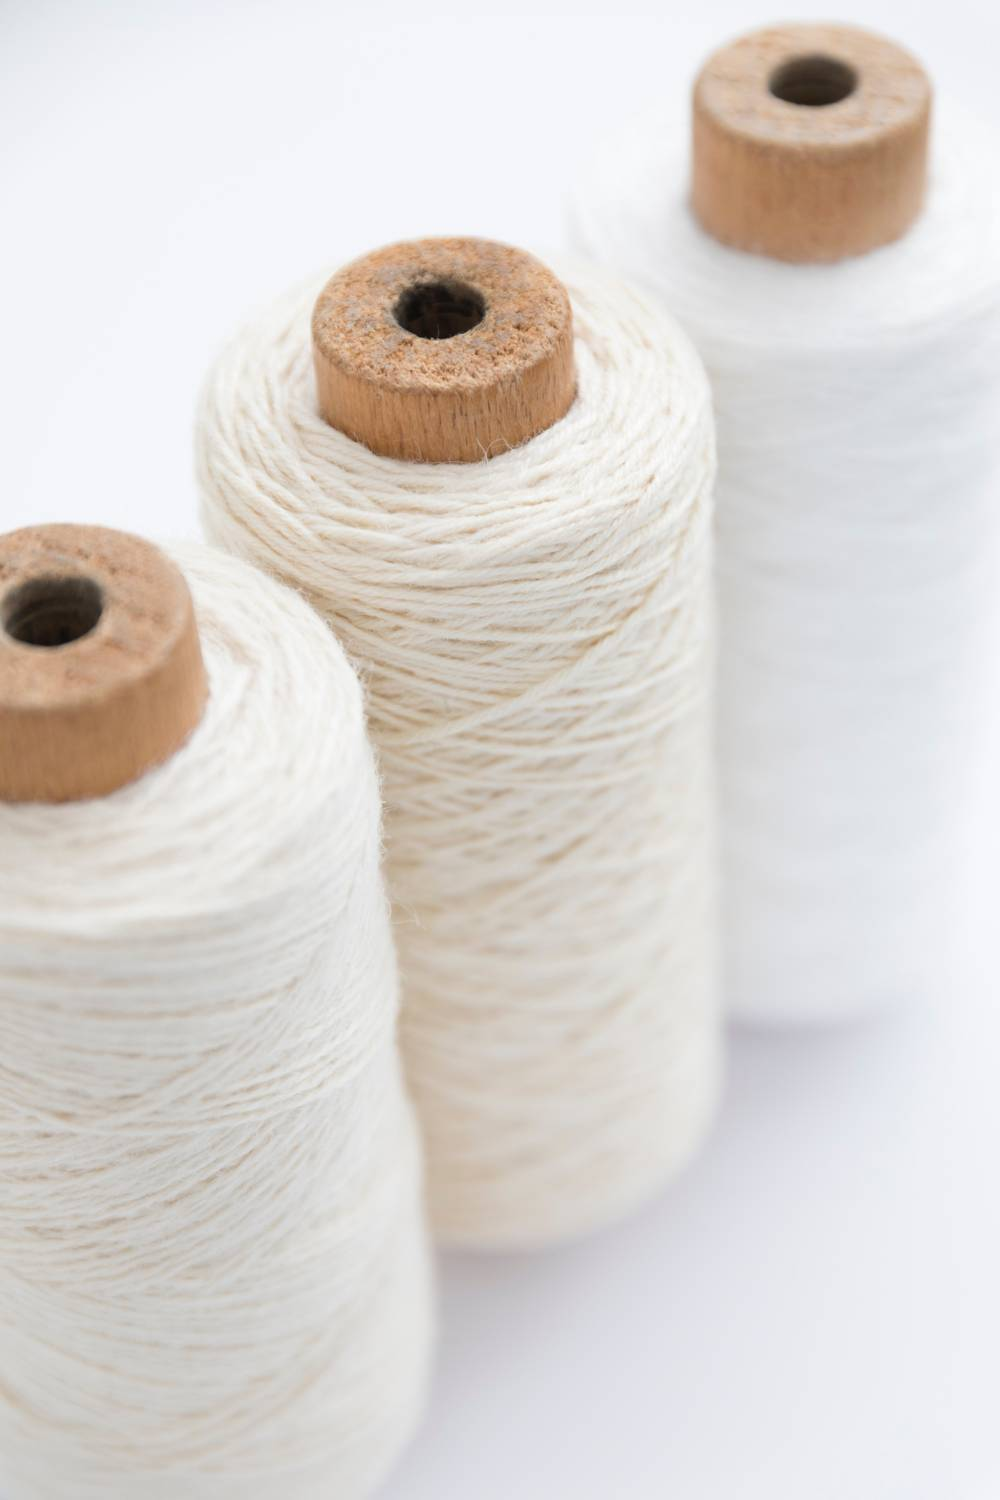 recycled cotton fiber yarn spool